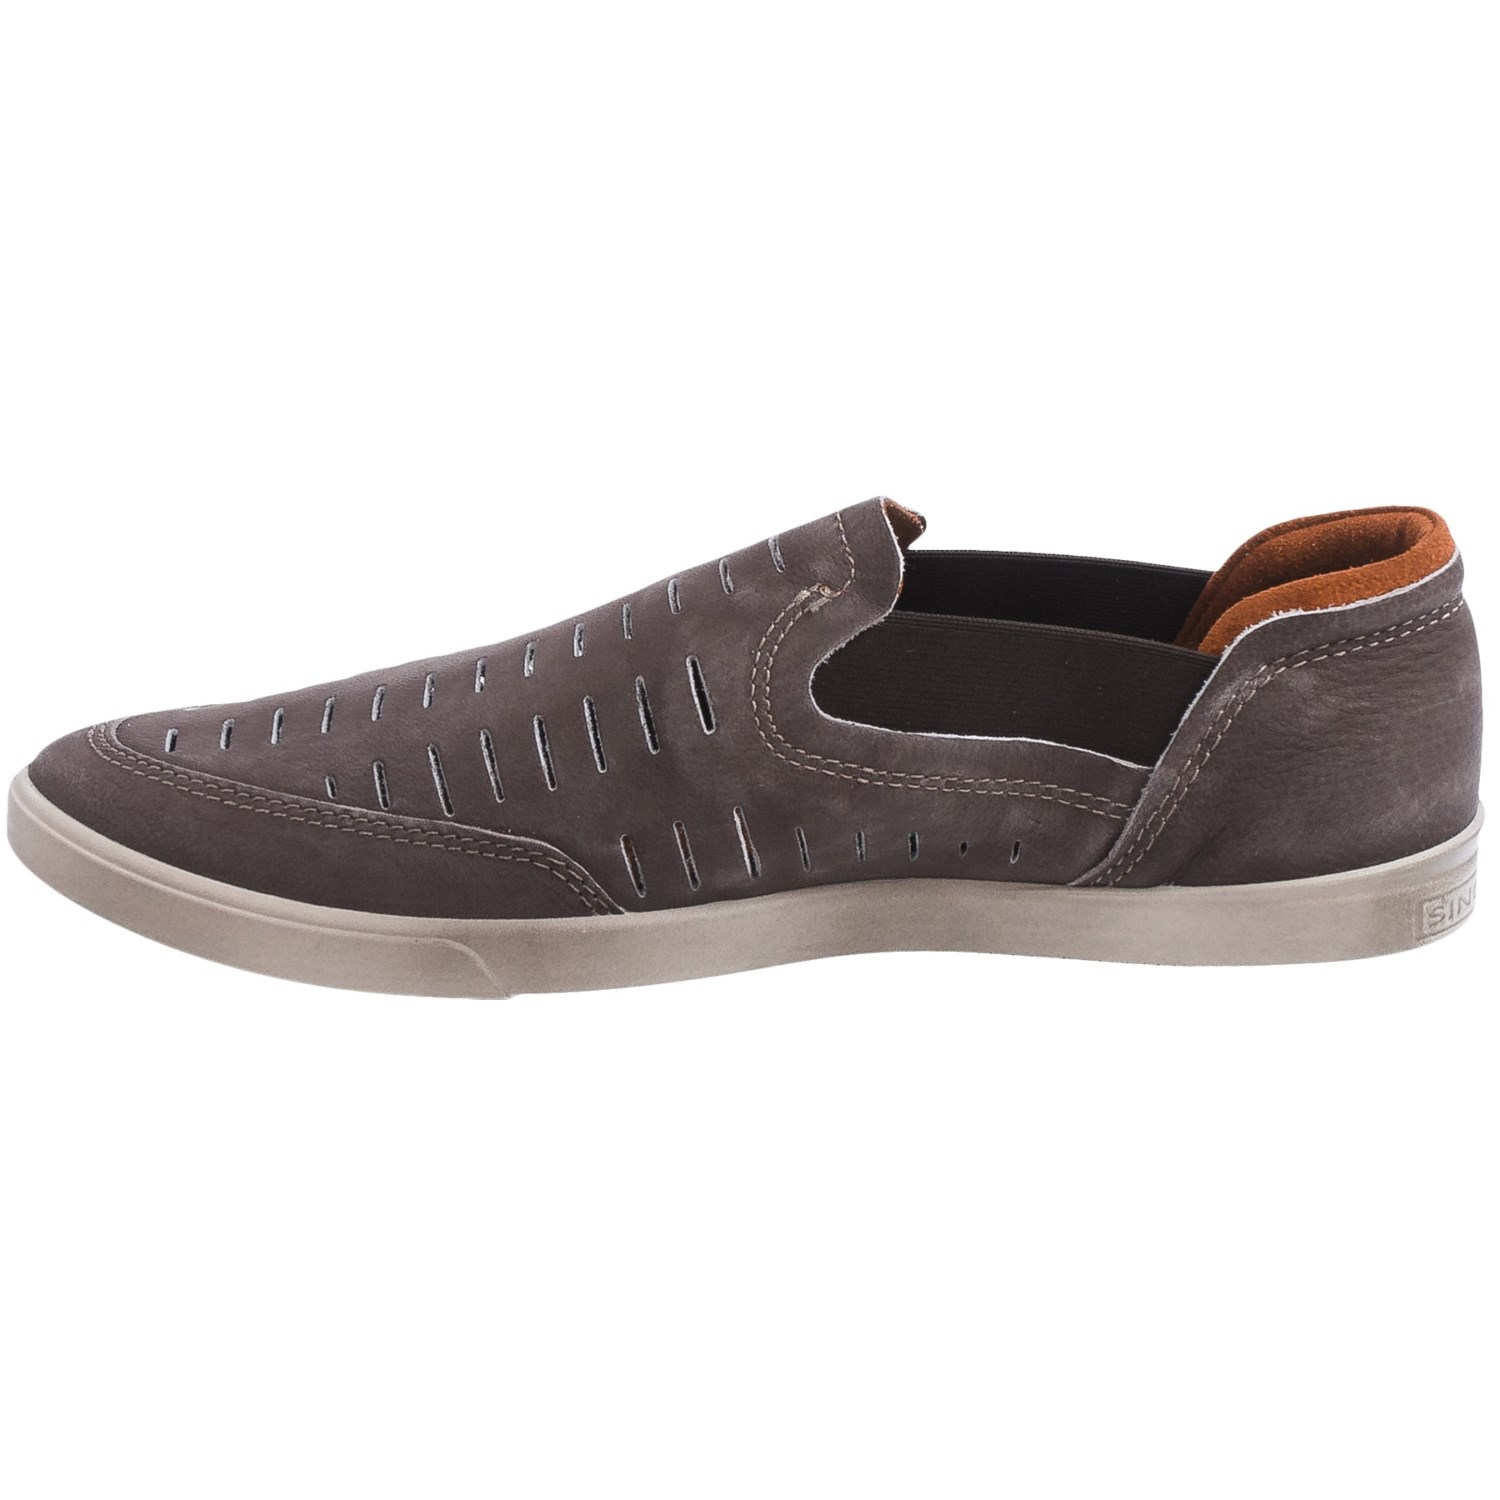 235961d8b259 ECCO Collin Trend Loafers (For Men) - Save 50%